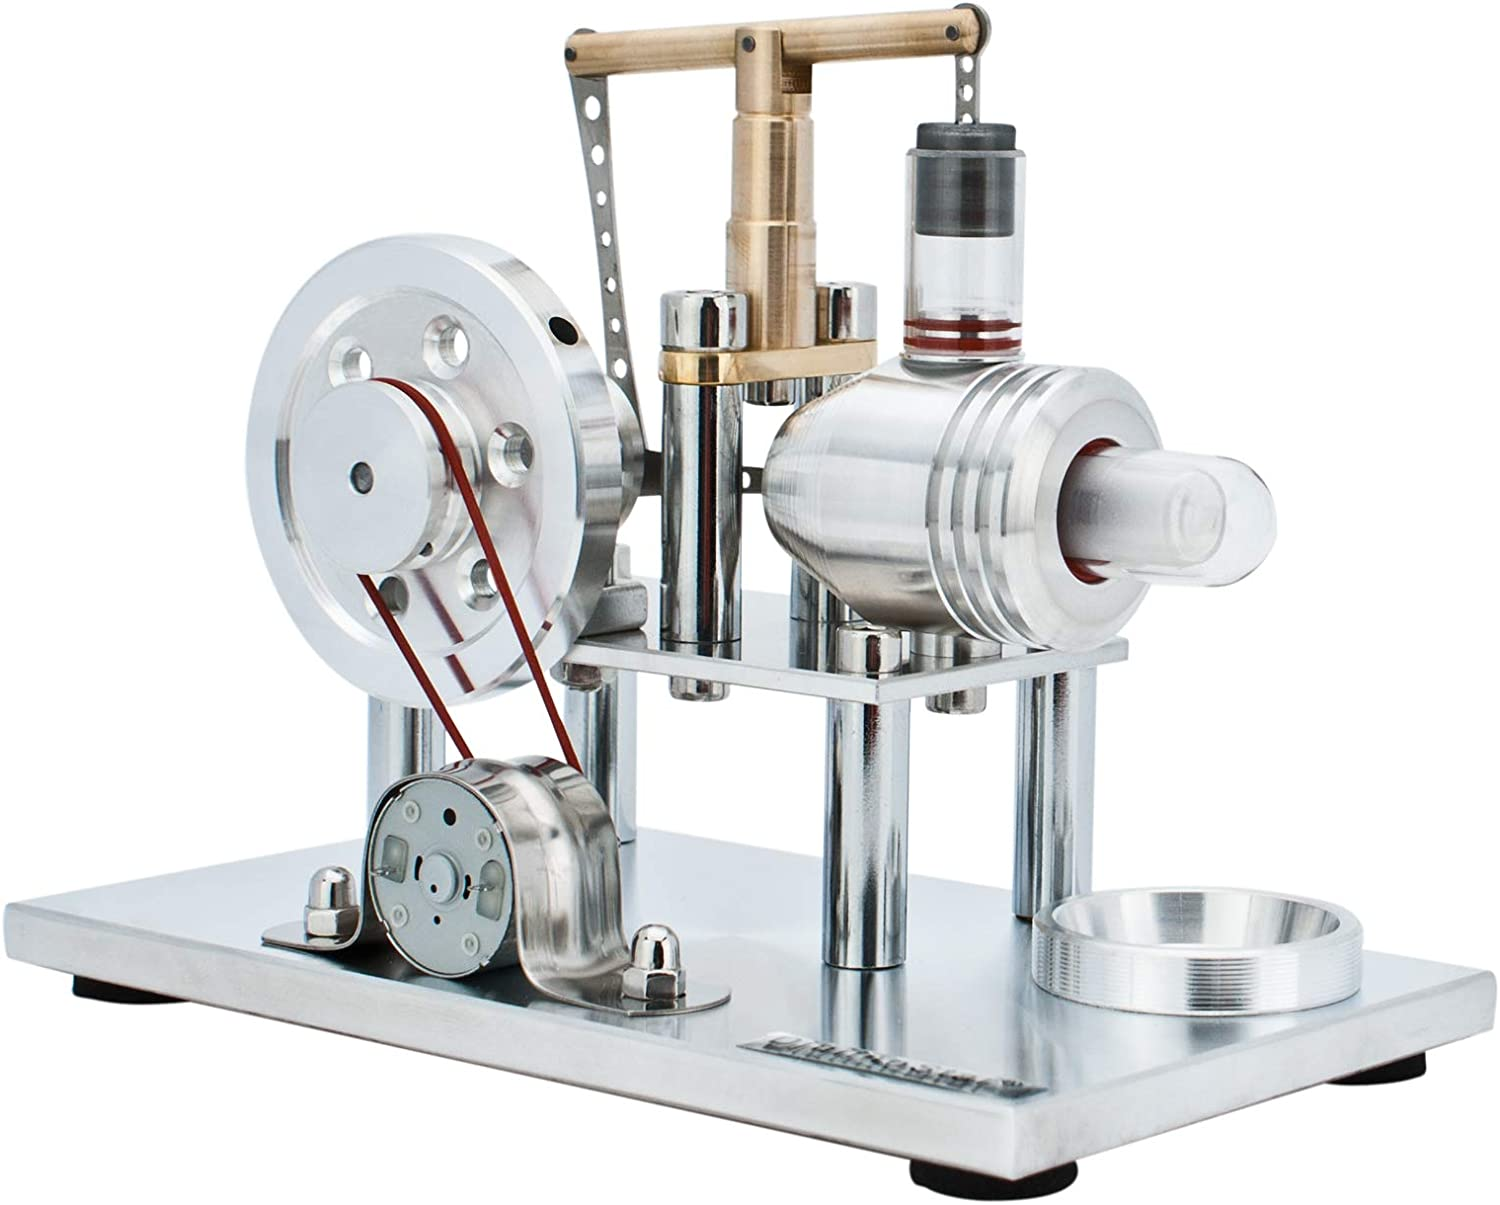 DjuiinoStar Hot Air Stirling Engine, Solid Metal Construction, Electricity Generator (DHA-BG-405)